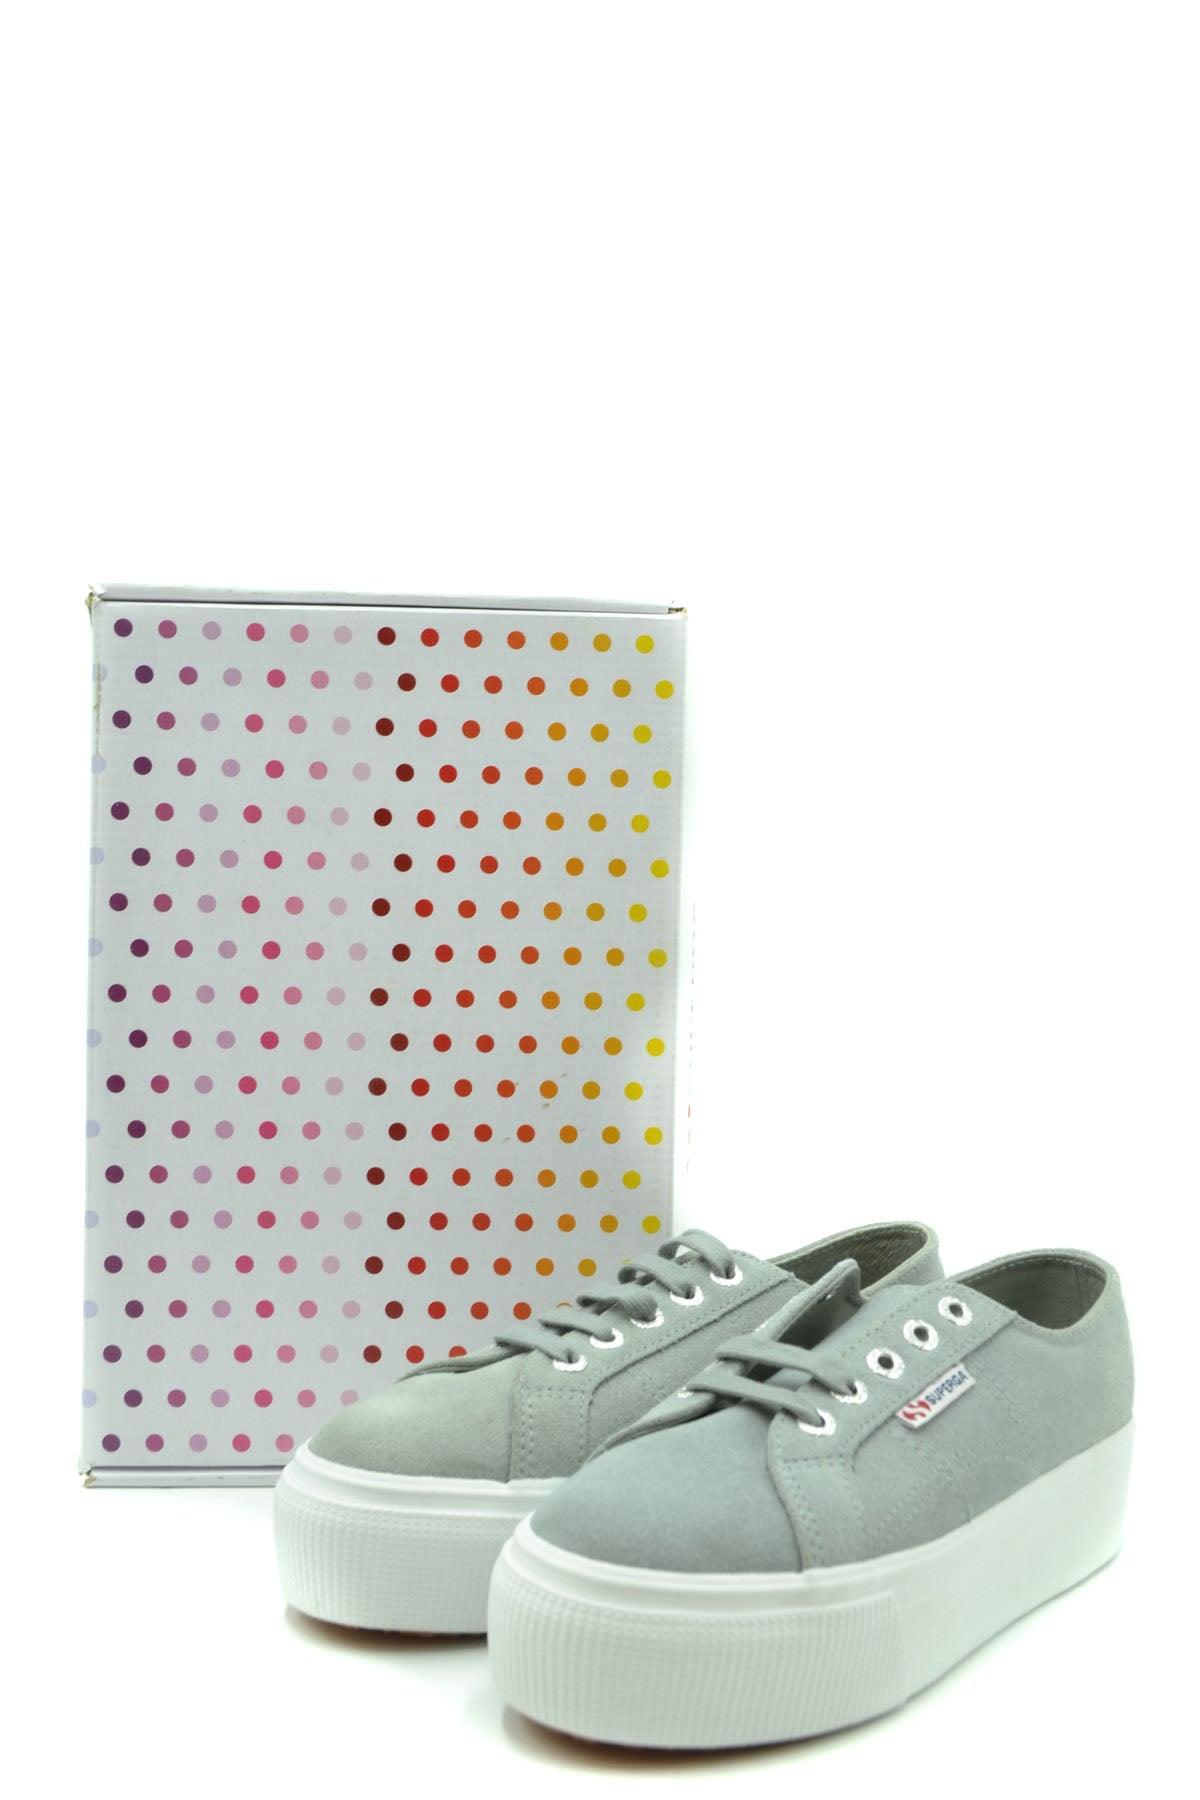 Shoes Superga-Sports & Entertainment - Sneakers-Product Details Year: 2020Composition: Chamois 100%Size: EuGender: WomanMade In: VietnamSeason: Spring / SummerType Of Accessory: ShoesMain Color: GrayTerms: New With LabelManufacturer Part Number: S003Lm0-Keyomi-Sook